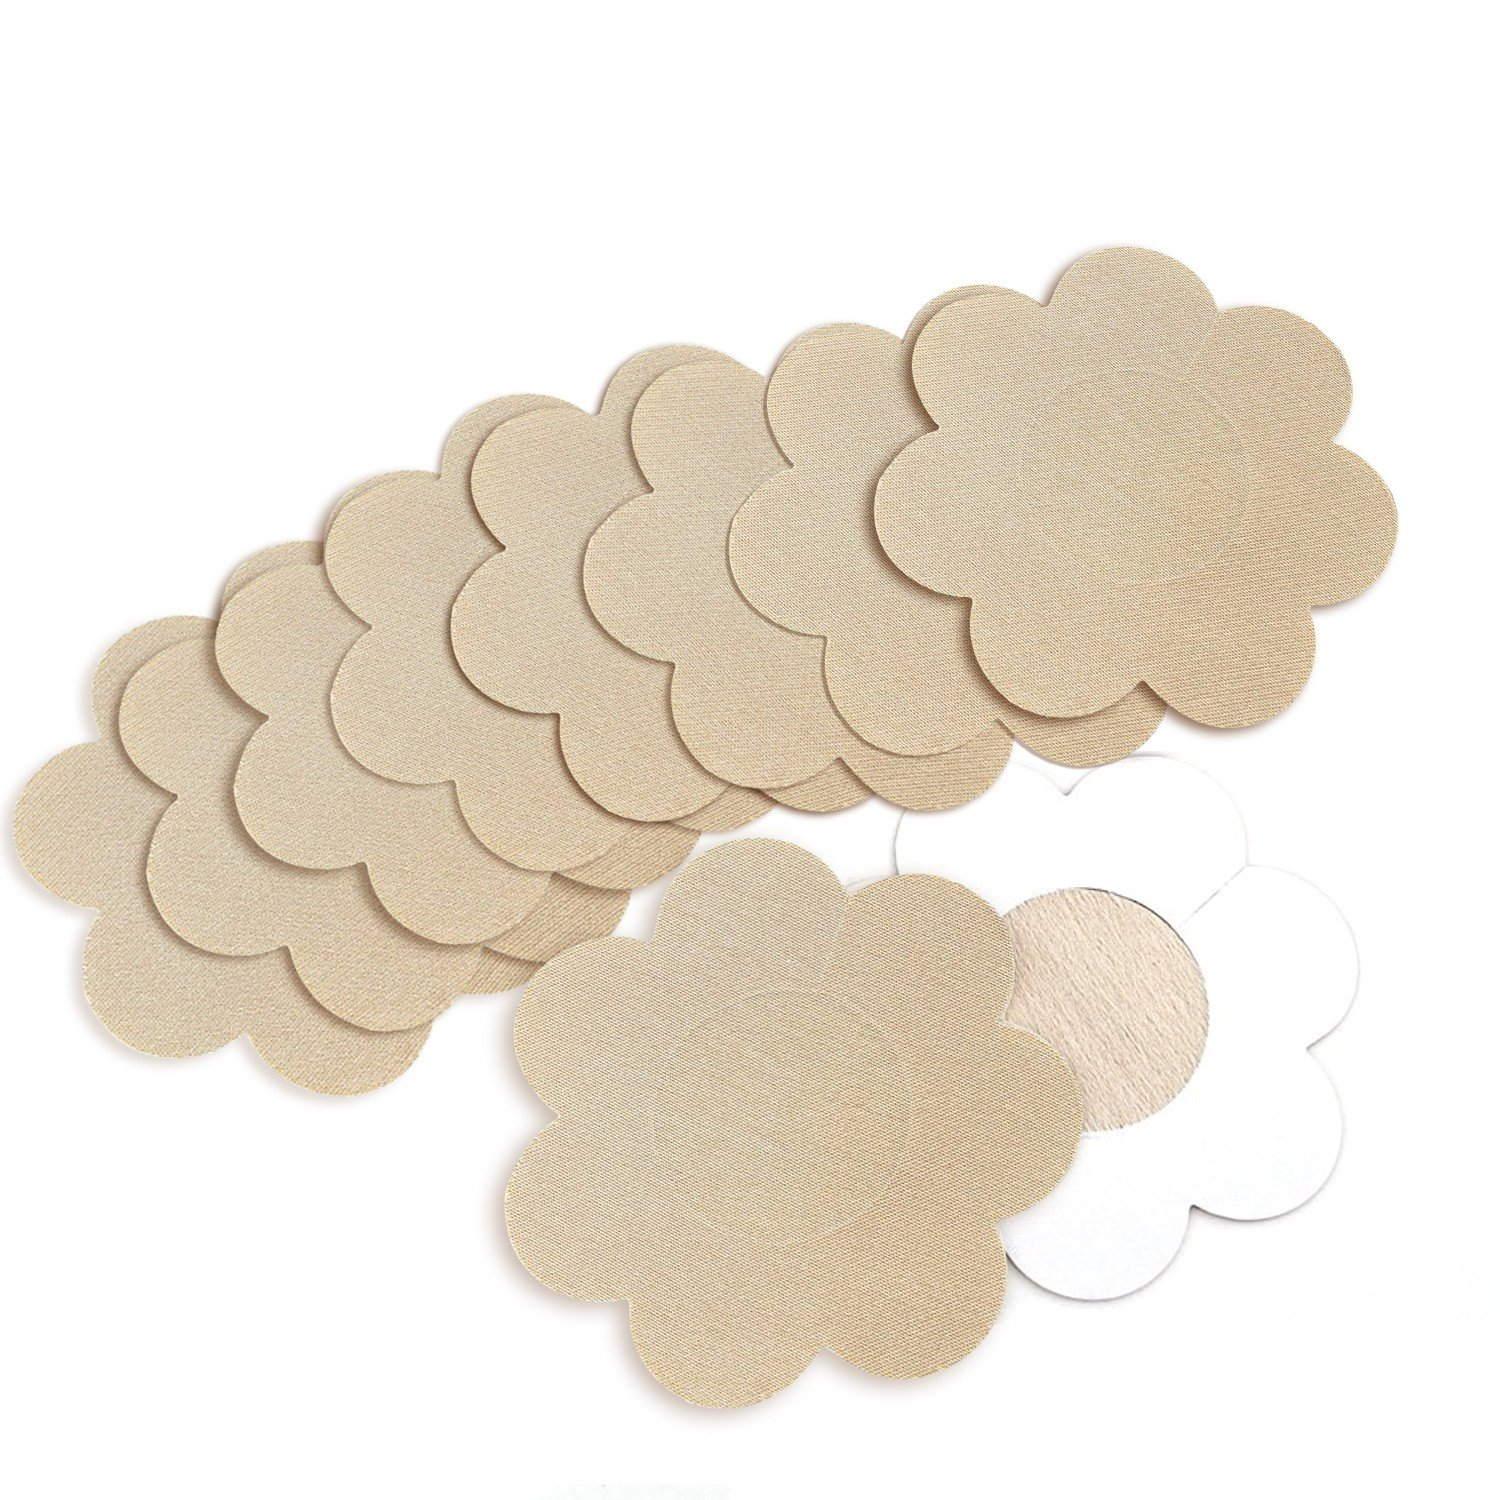 NippleCovers, Sexy Breast Pasties Adhesive Bra Petal Tops Nippleless Cover Disposable (Beige 30 Pairs)